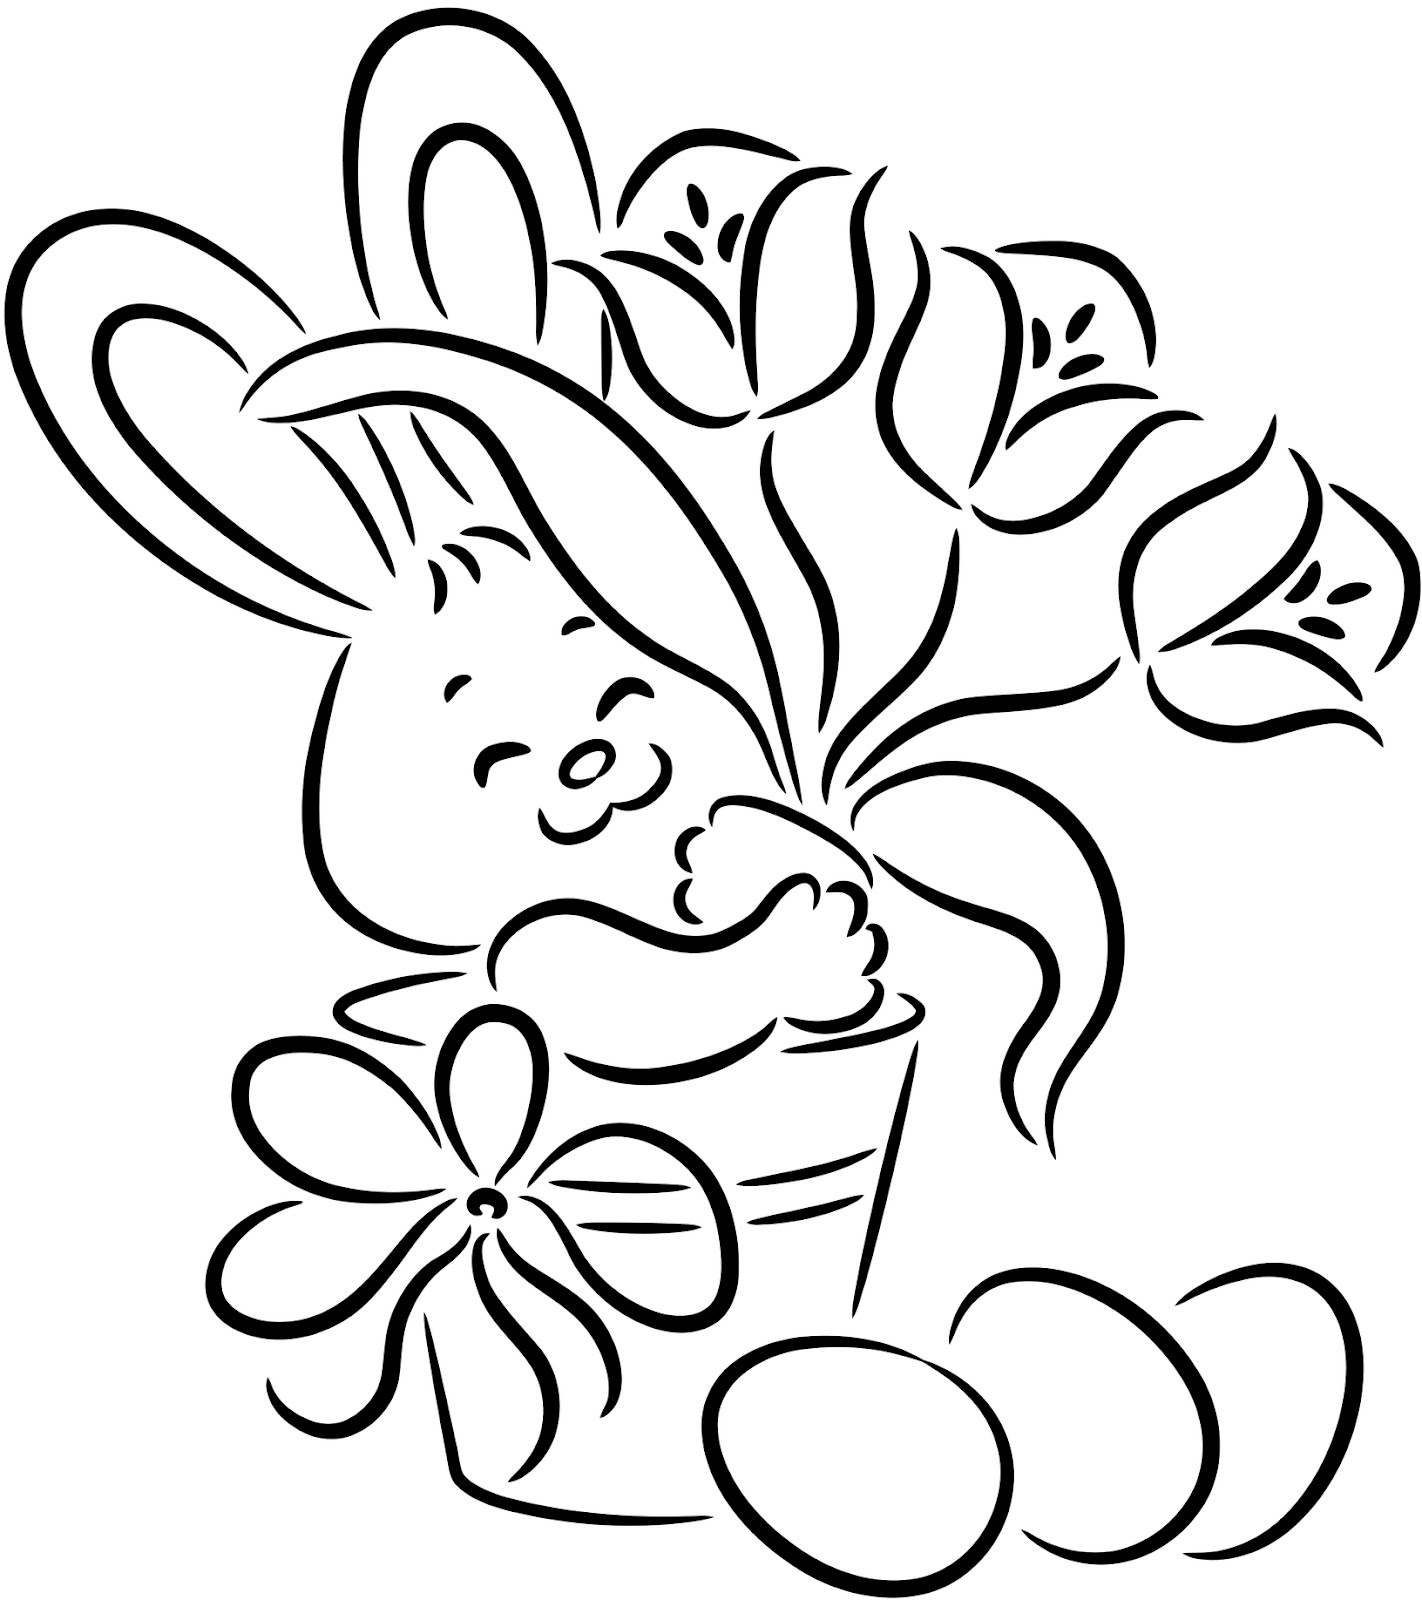 coloring sheets rabbit get this baby bunny coloring pages for toddlers 68031 rabbit sheets coloring